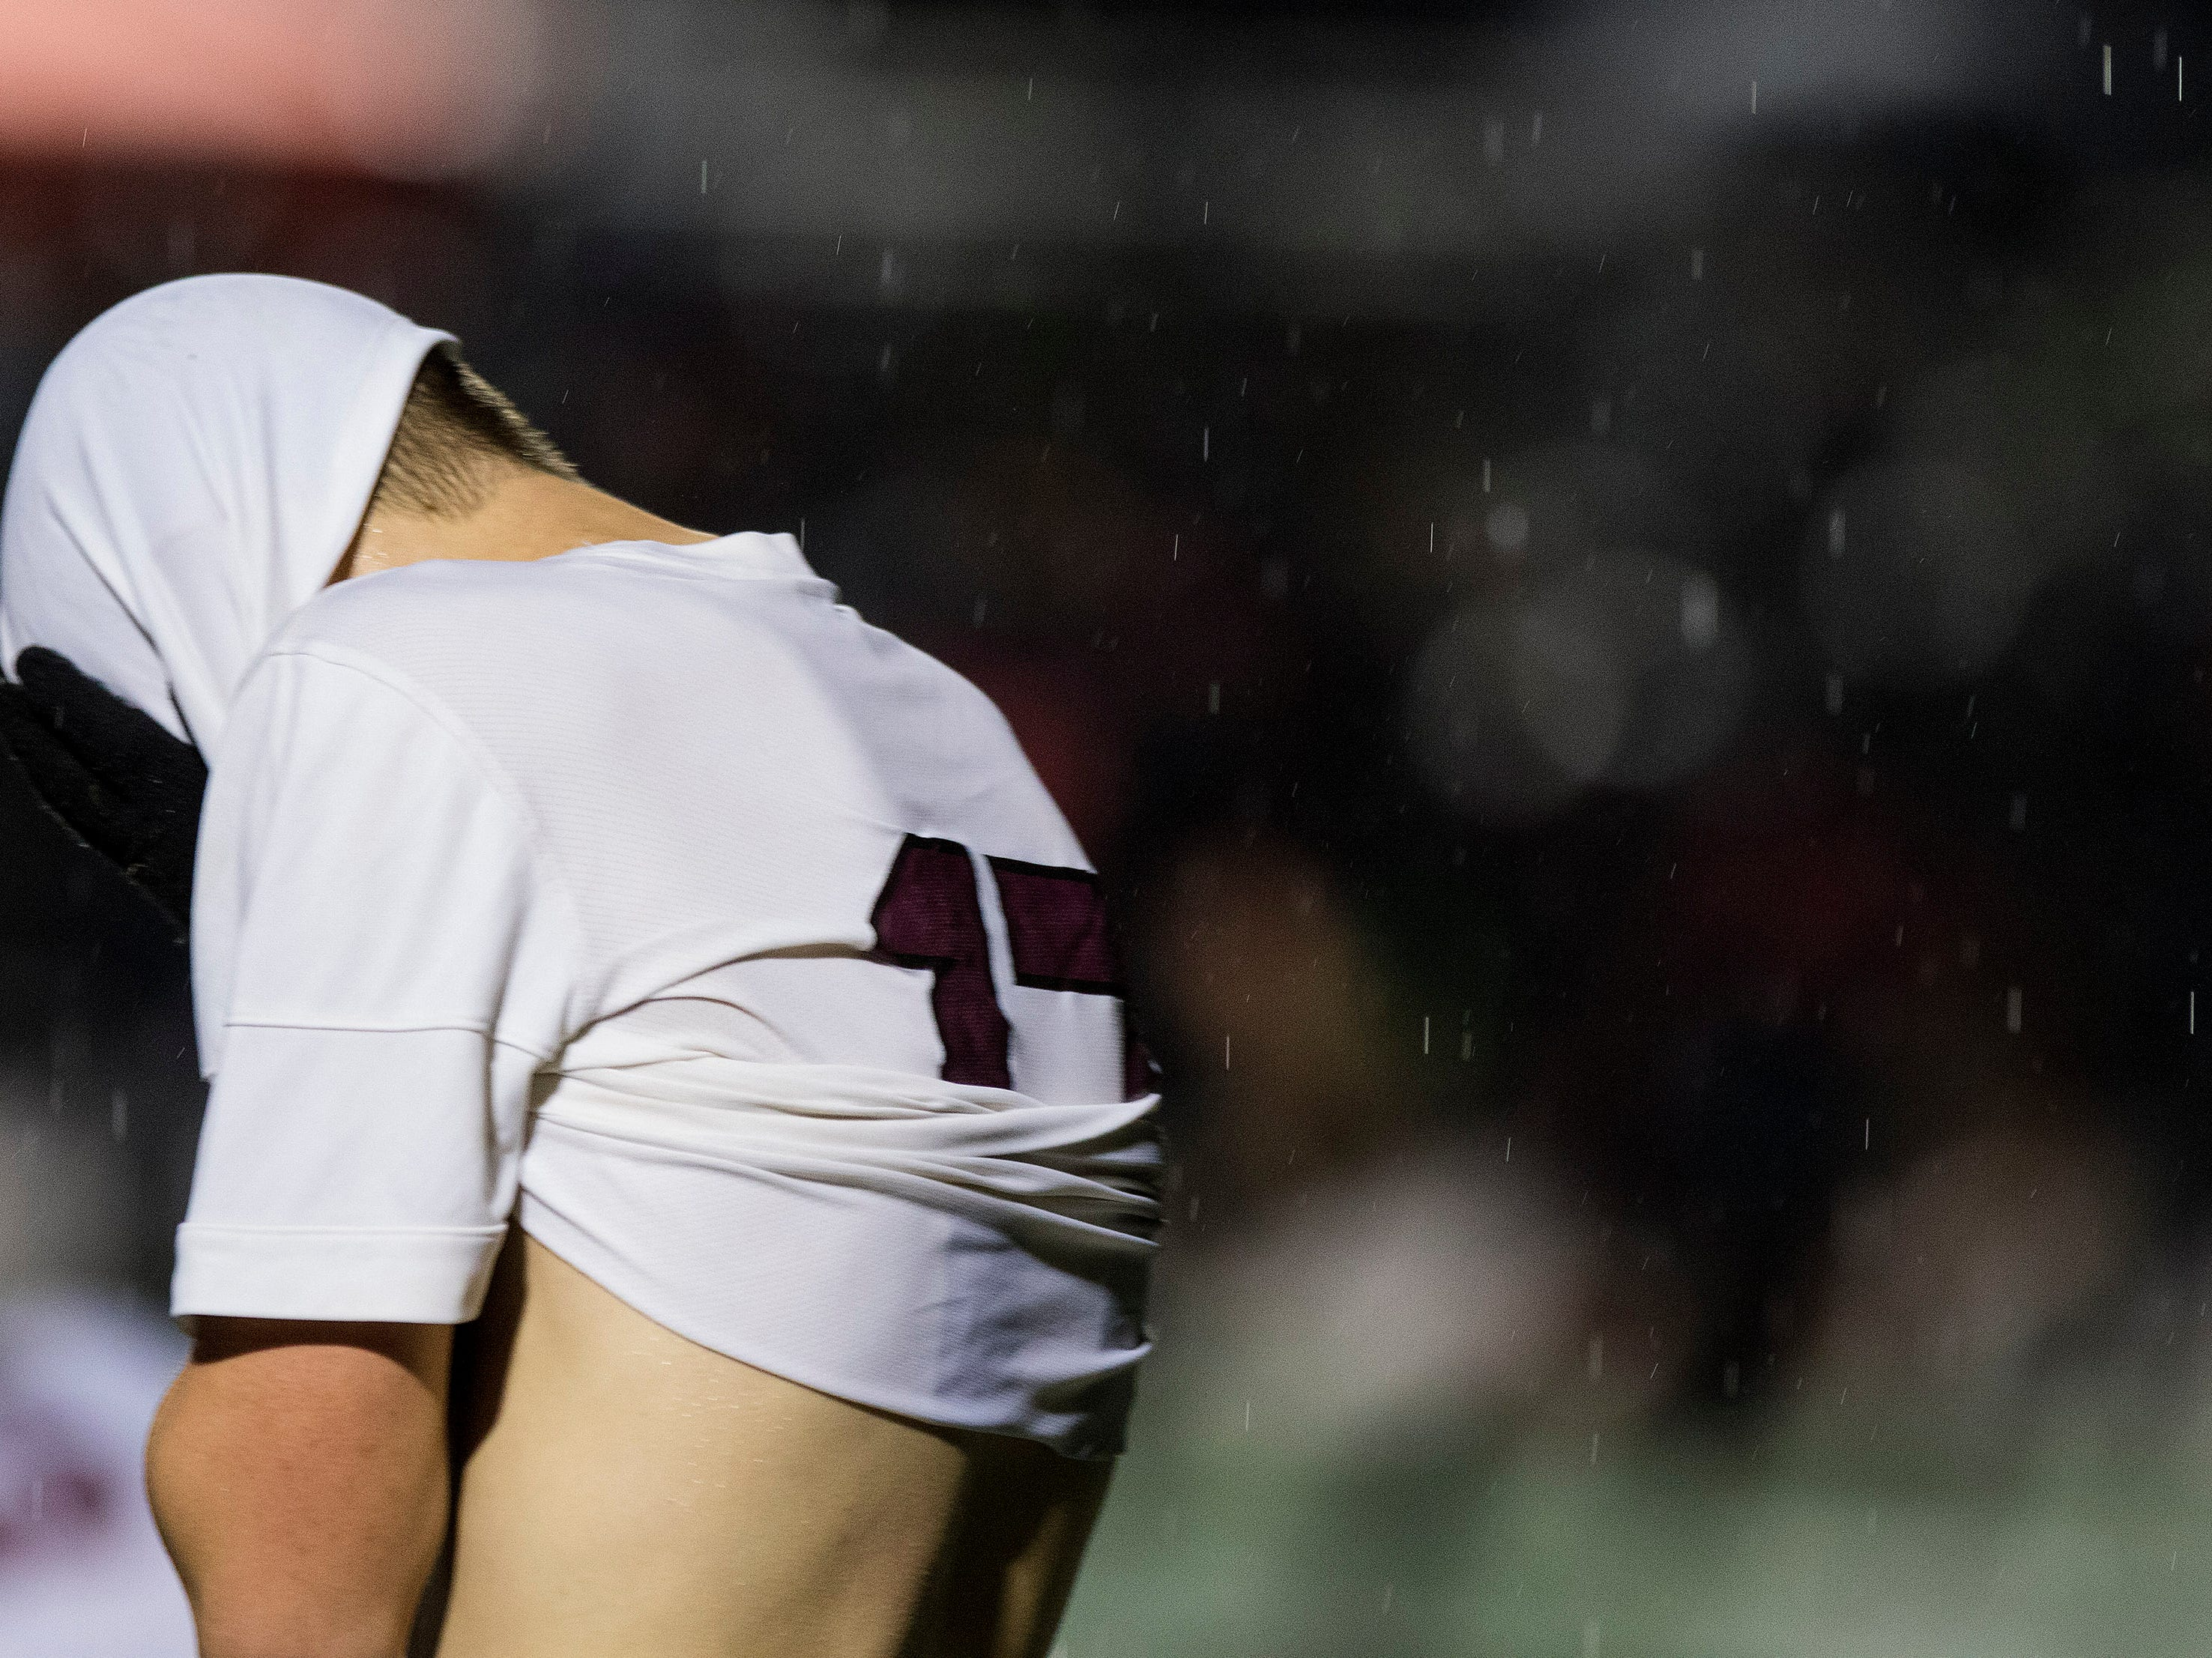 Hamilton's Derek Schlenker (17) hides his face after Trophy scored it's second goal during in the 6A State Championship game in Gilbert, Thursday, Feb 21, 2019. Brophy won 3-0.